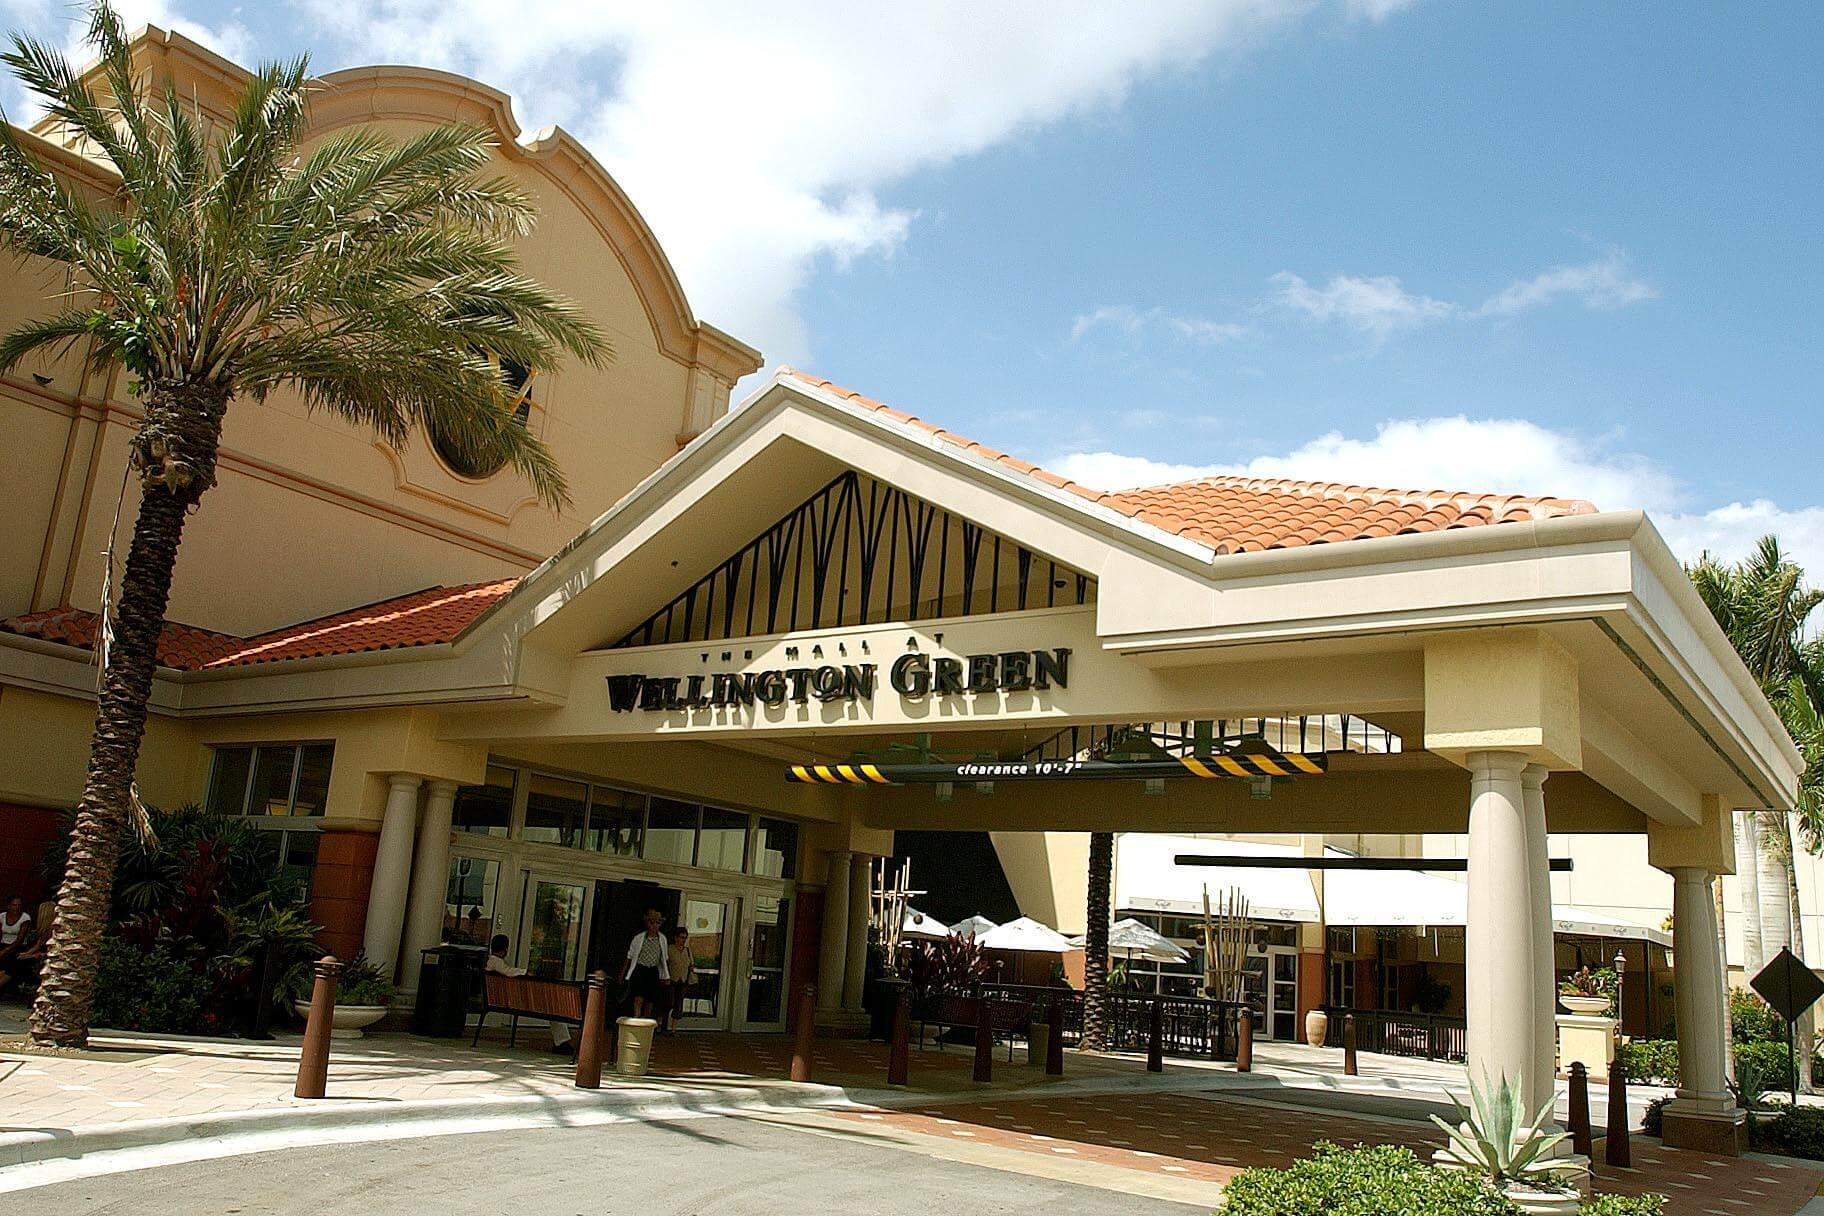 Compras em Palm Beach: shopping The Mall at Wellington Green